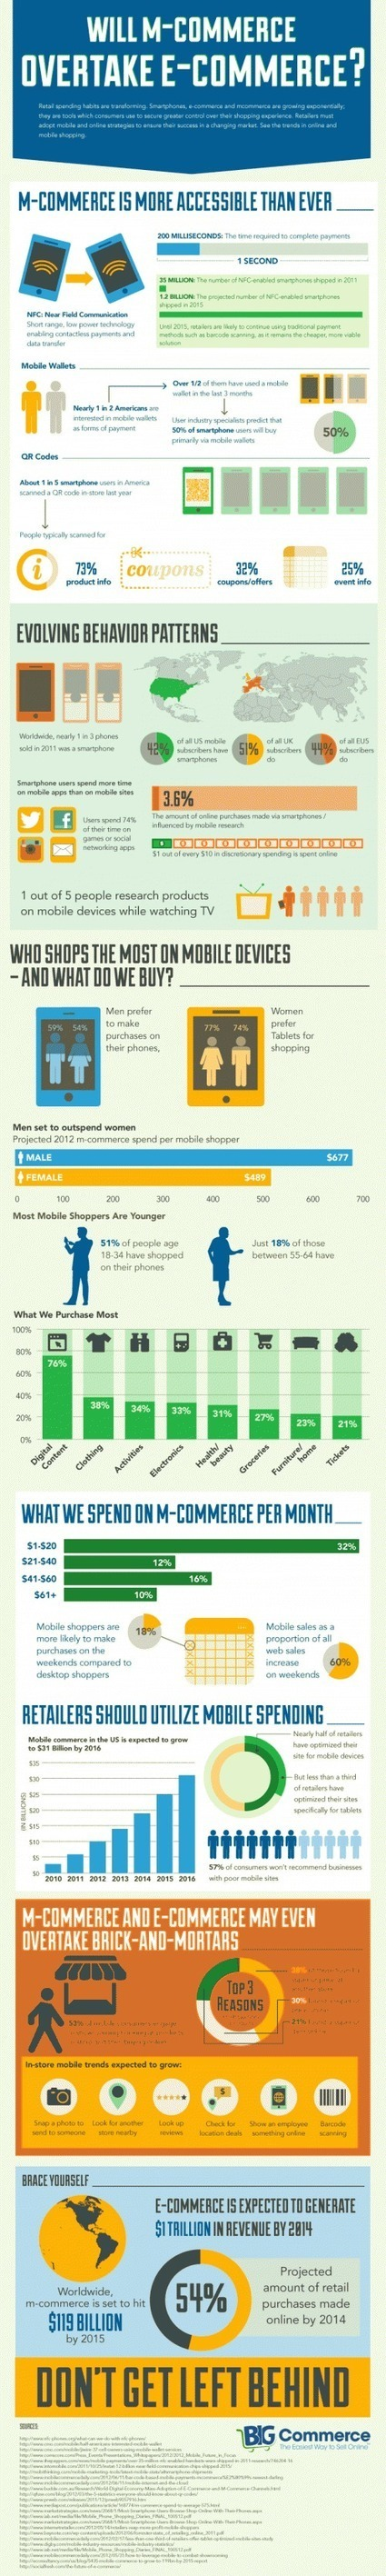 [Infographie] Le M-commerce va-t-il rattraper l'E-commerce ? - Websourcing.fr | E-Commerce M-Commerce T-Commerce | Scoop.it